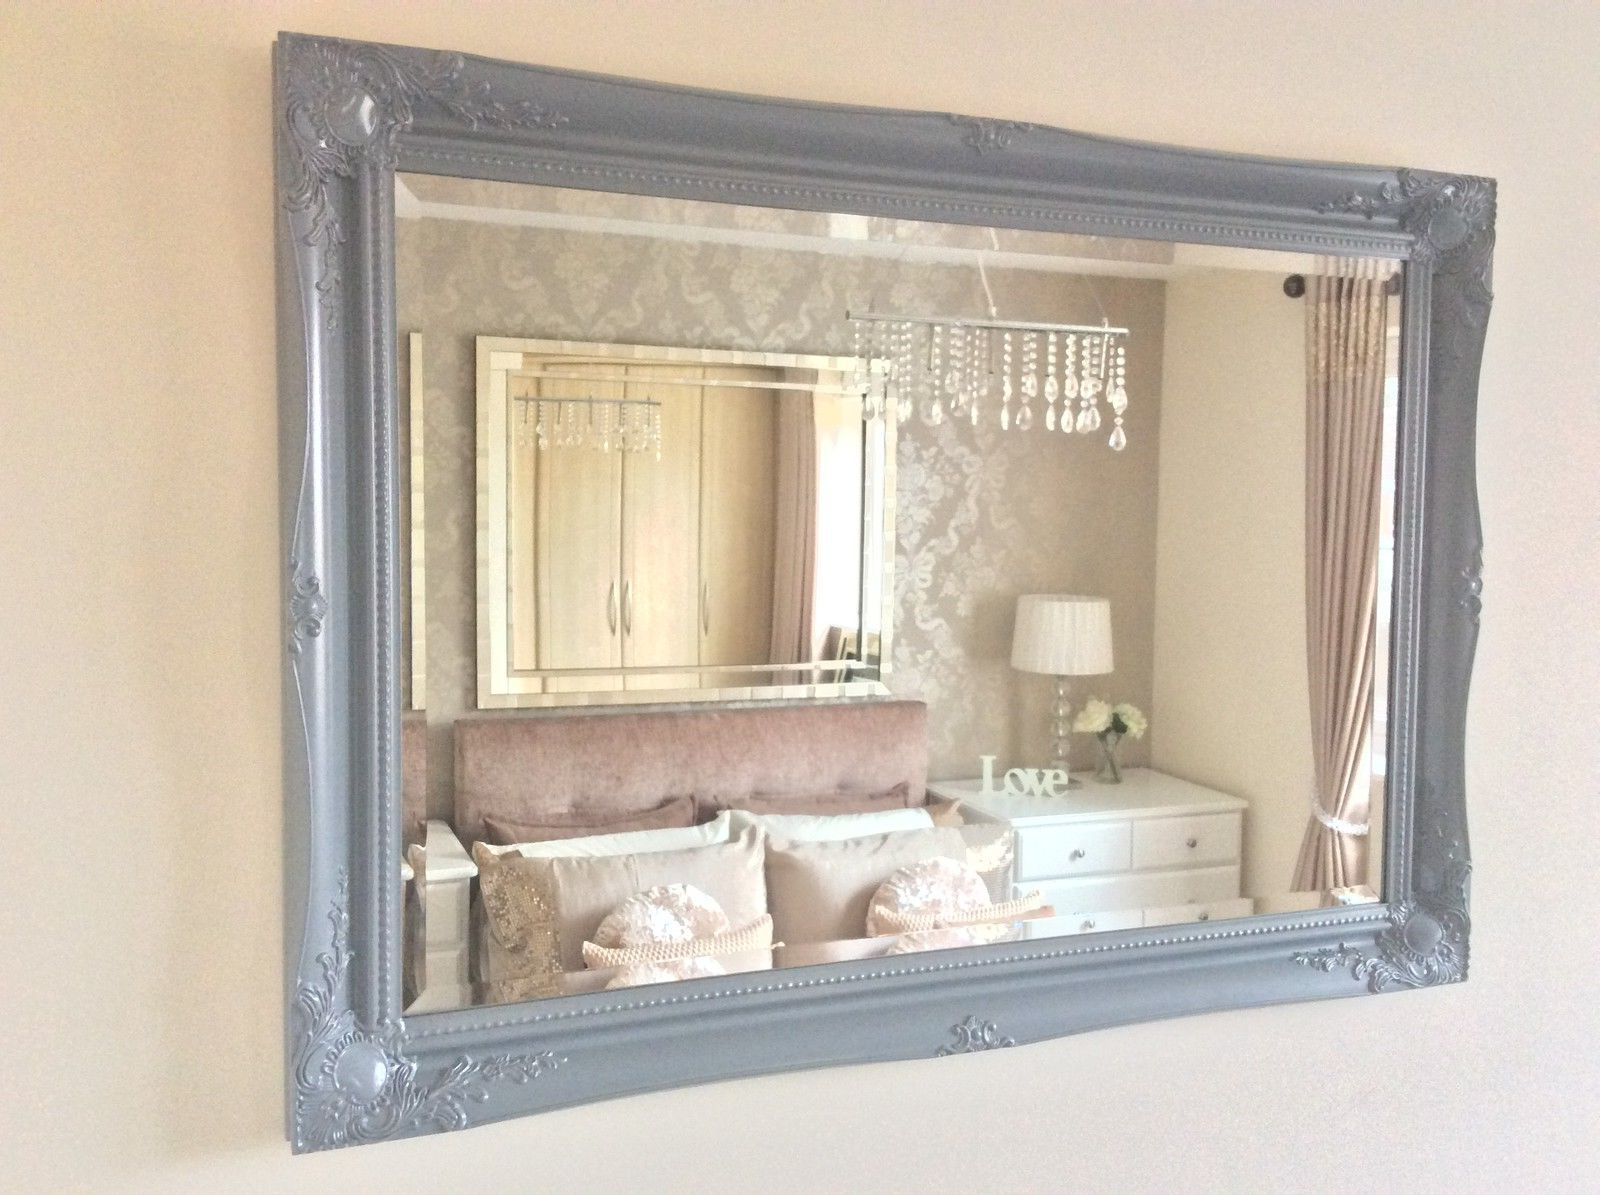 Shabby Chic Large Wall Mirrors Regarding Recent Large Grey Shabby Chic Ornate Decorative Wall Mirror Free (View 18 of 20)